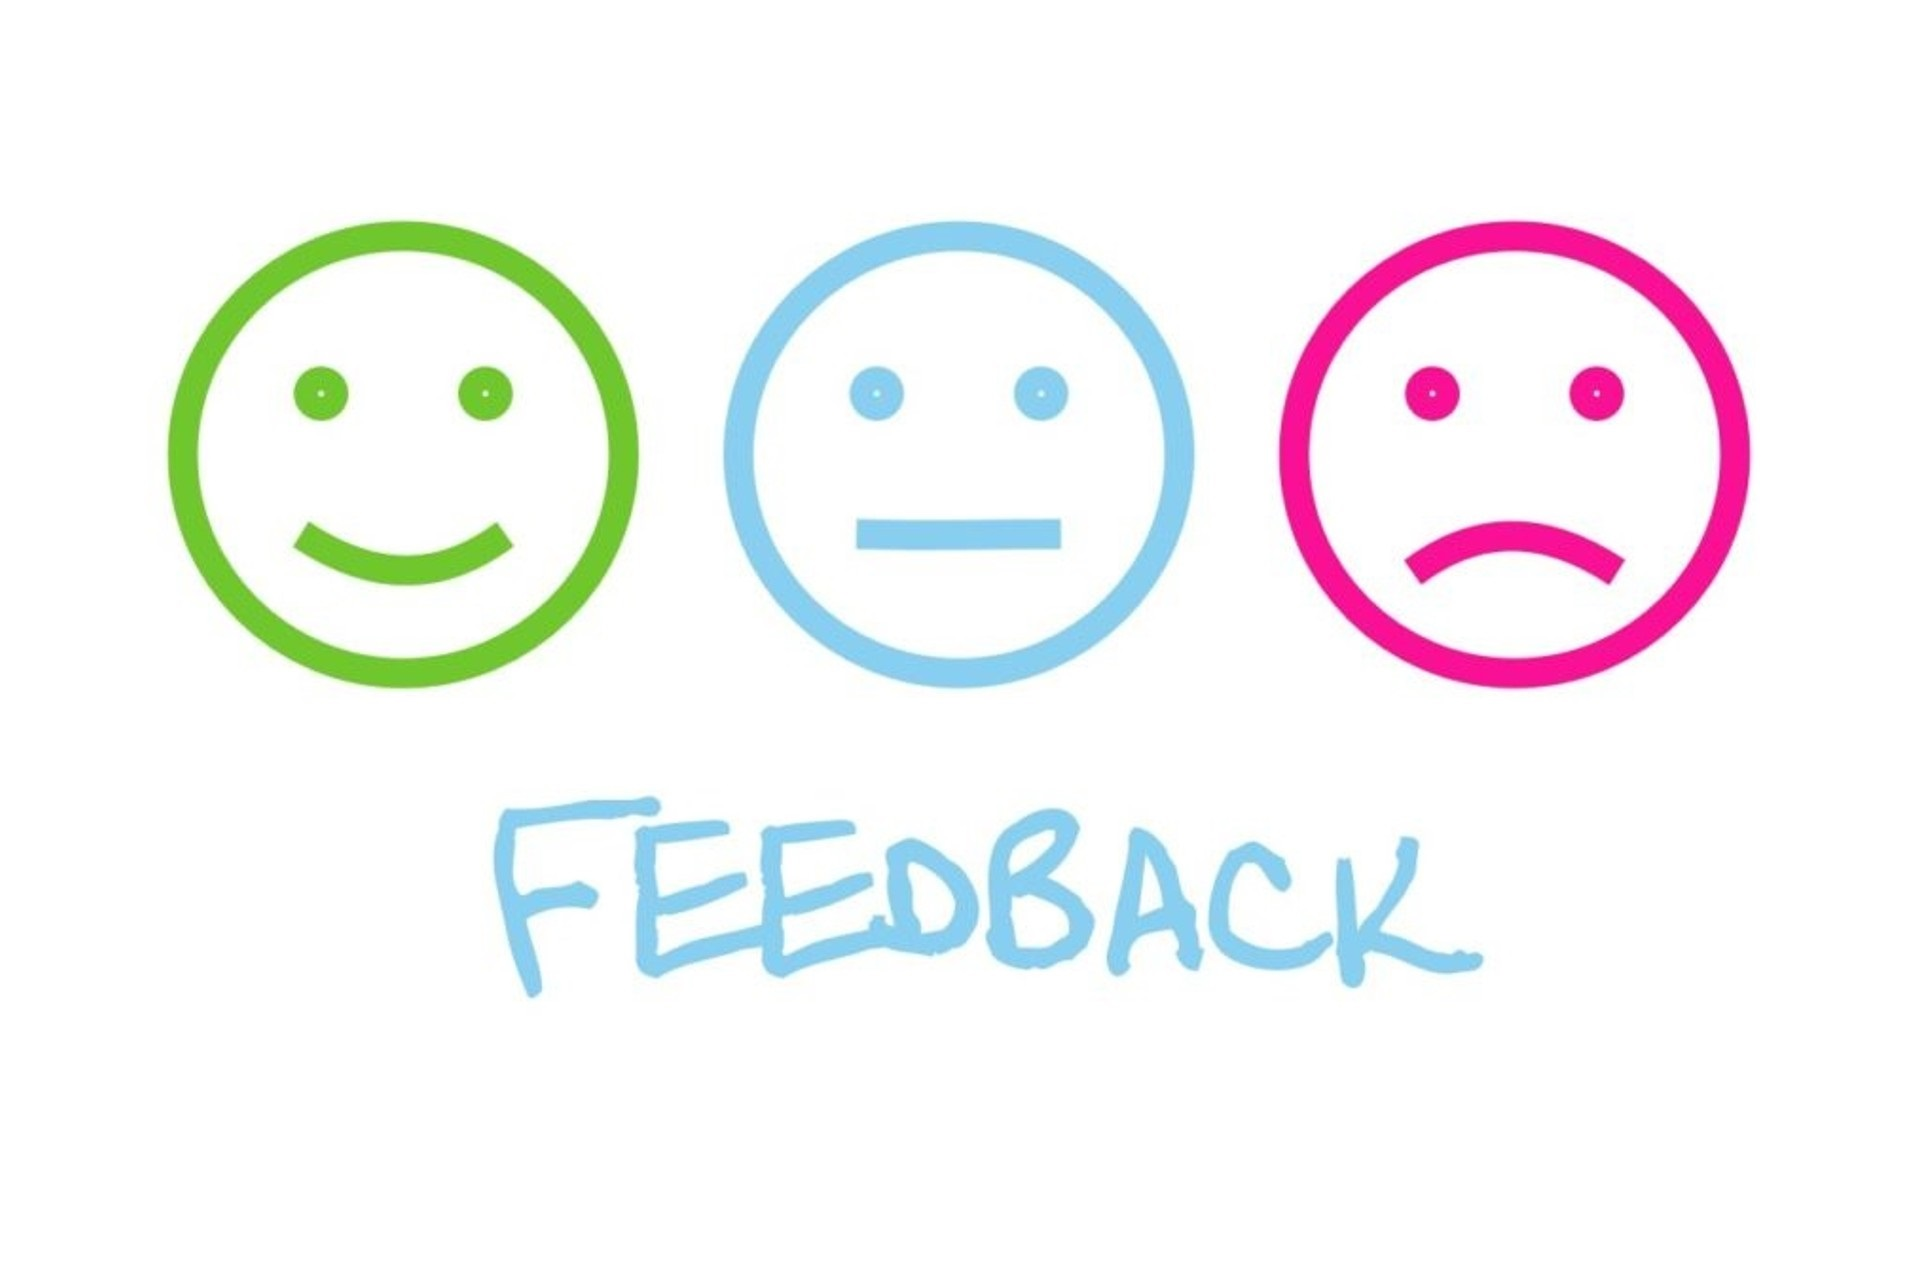 Feedback is a gift!